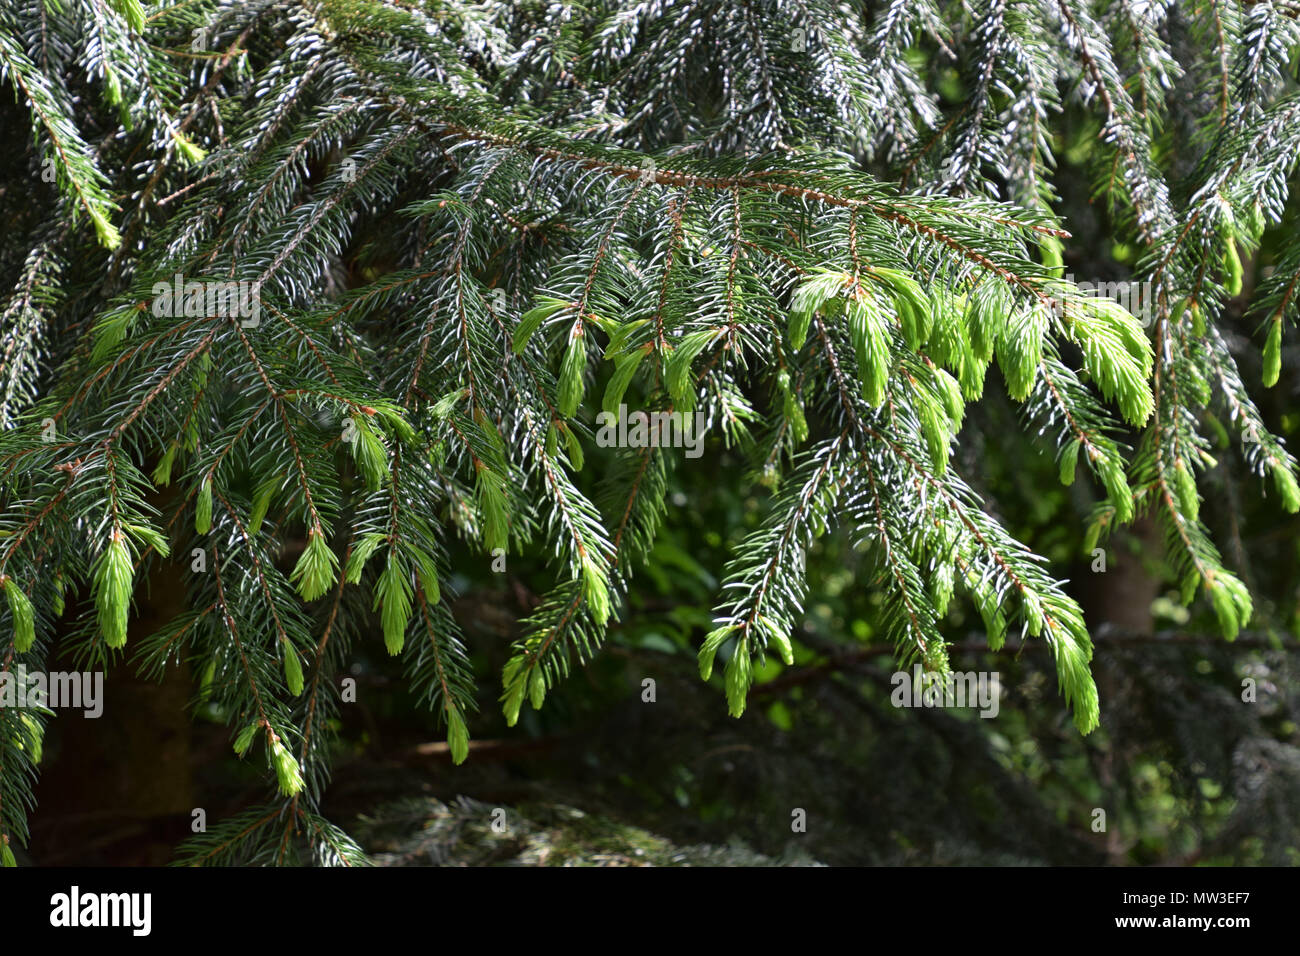 fresh bright green new young sprouts of spruce tree in spring Stock Photo